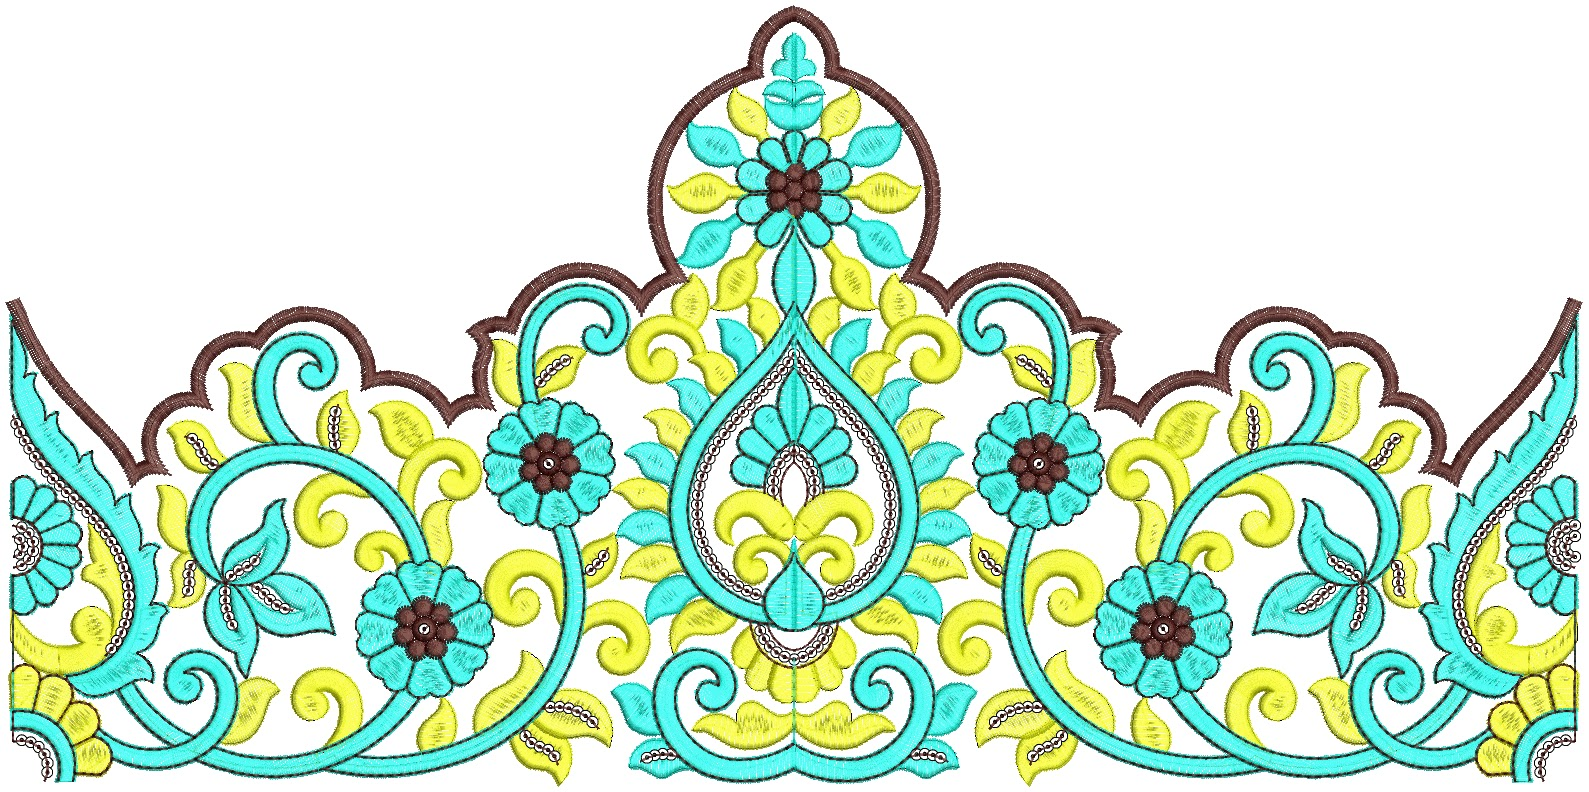 Border Design Patterns - ClipArt Best